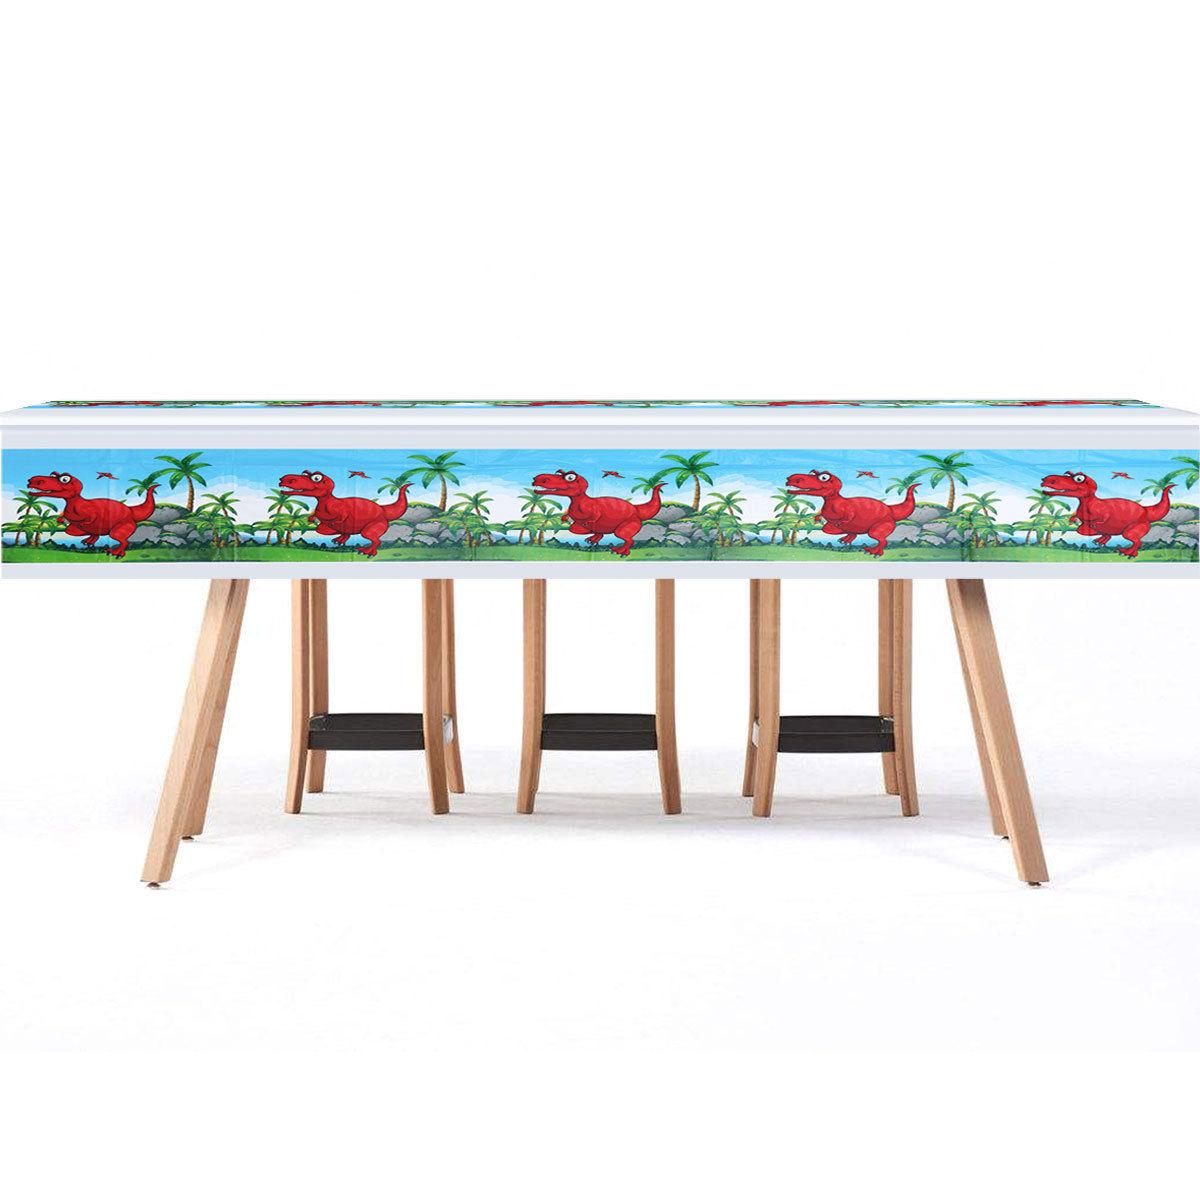 1 Pc Table Runner Disposable Rectangle Table Cover Tableclot